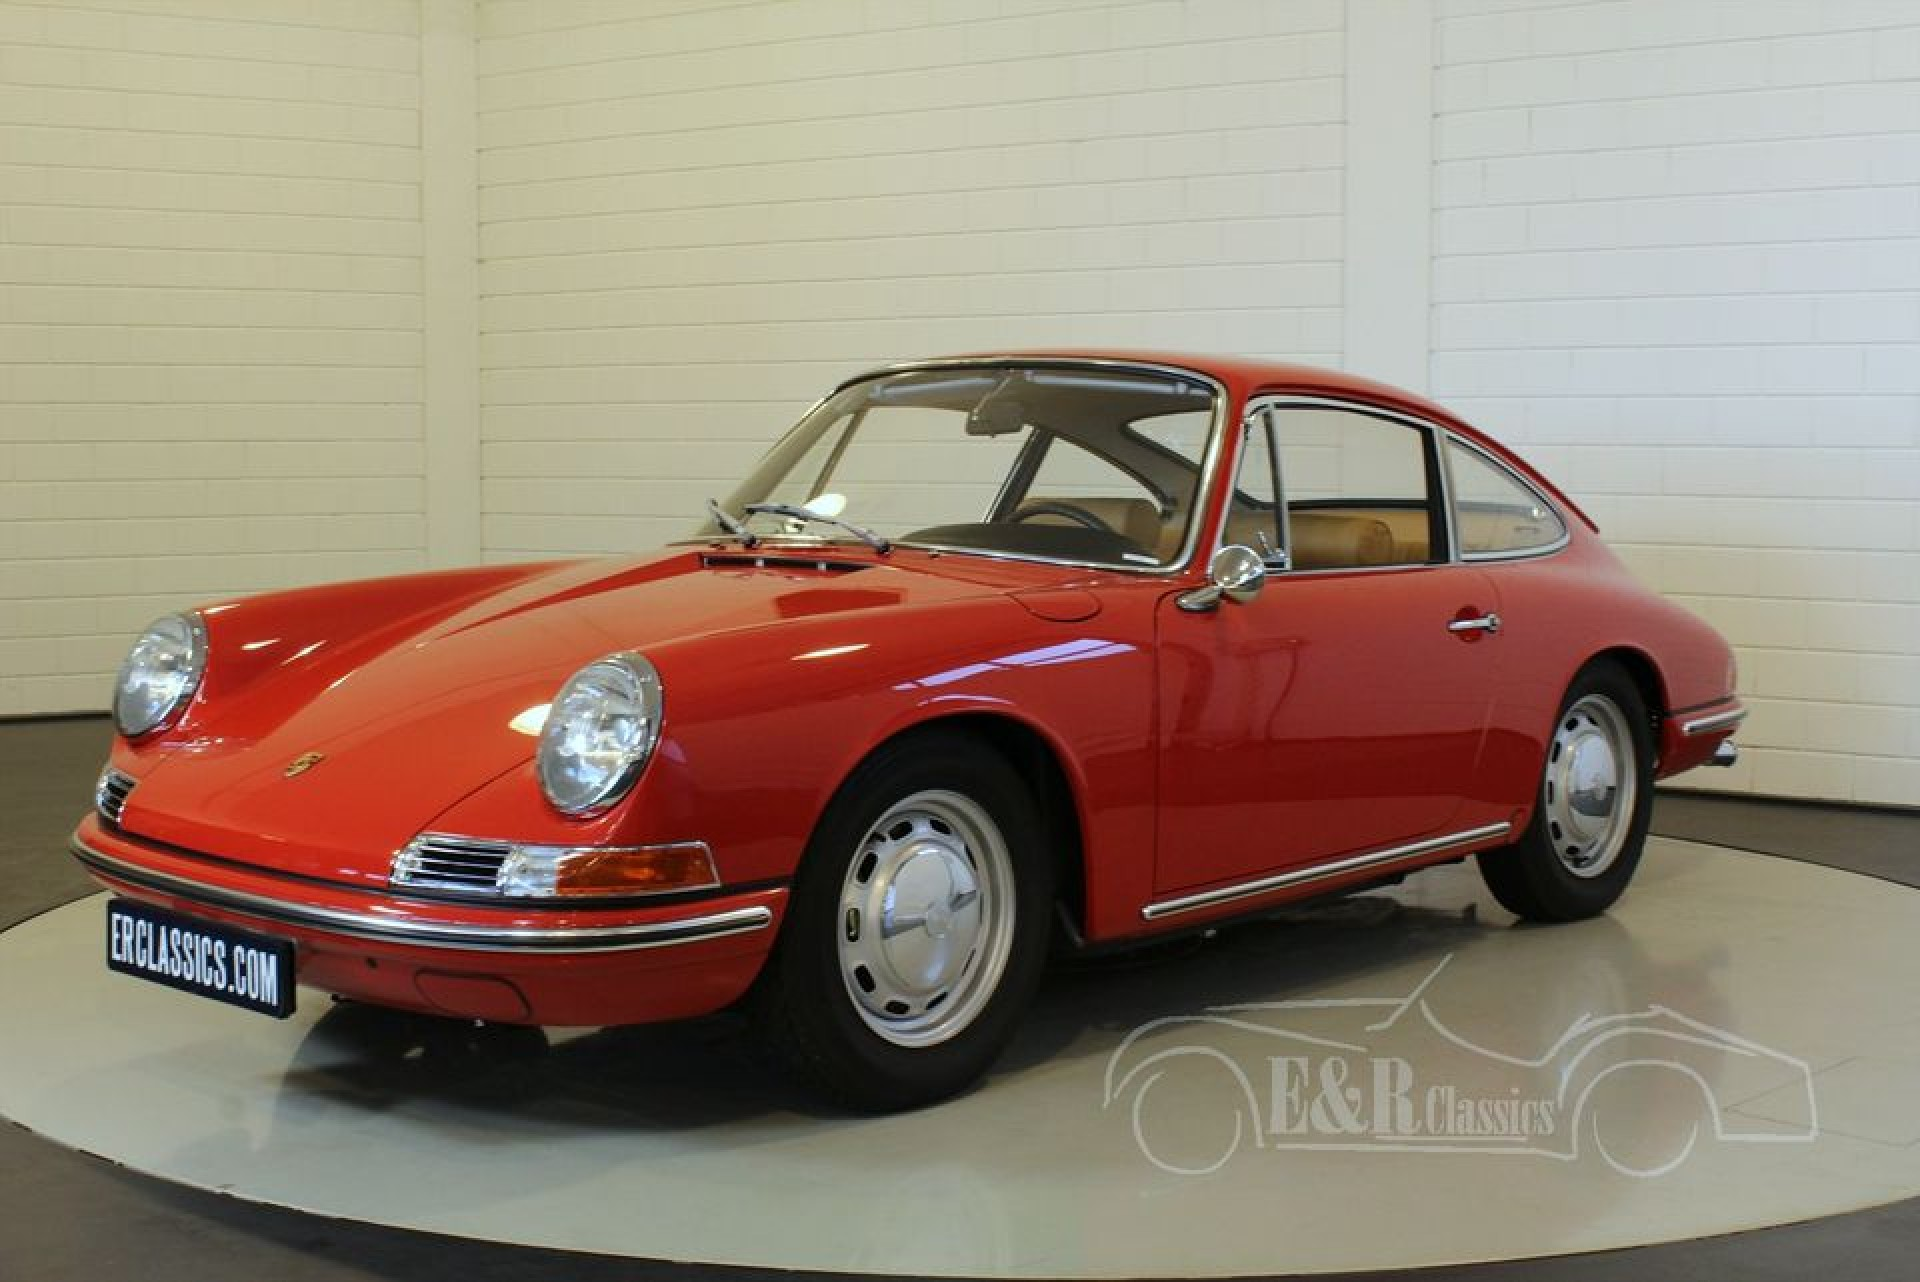 porsche 911 2 0 coupe june 1965 vendre erclassics. Black Bedroom Furniture Sets. Home Design Ideas